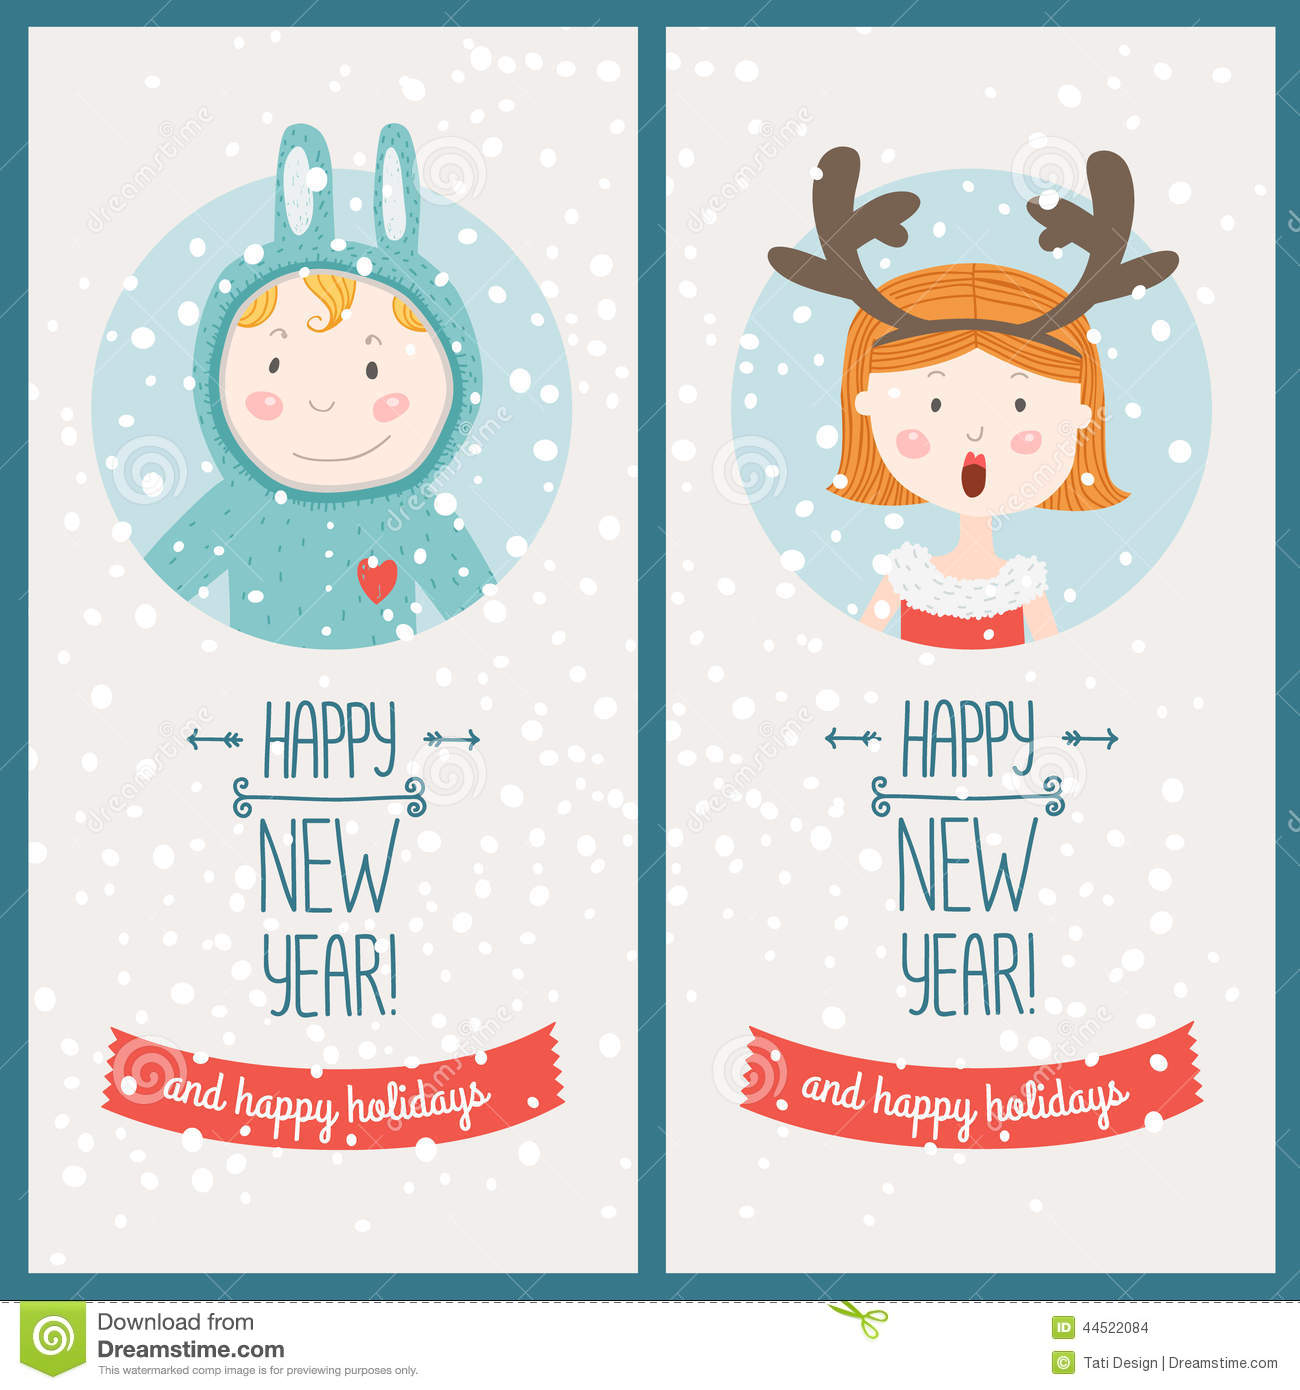 Cute new year cards merry christmas and happy new year 2018 cute new year cards m4hsunfo